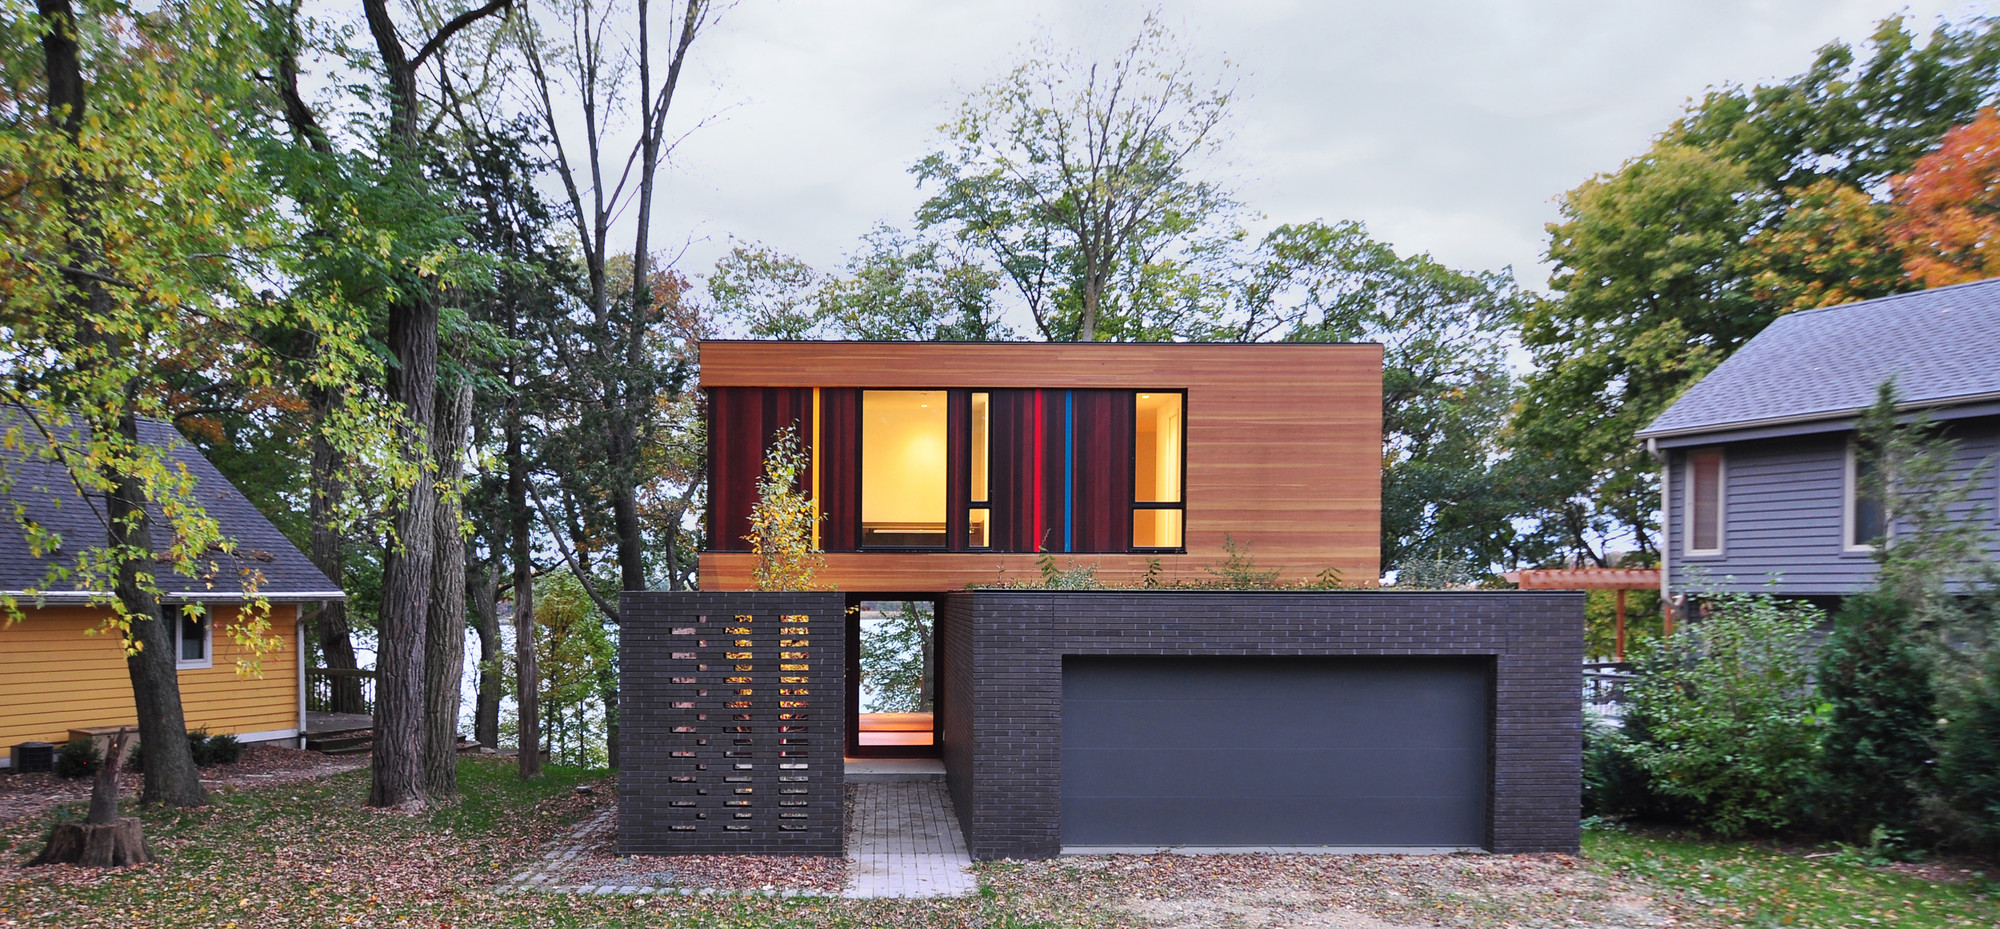 aia names its 2014 small projects awards winners archdaily redaction house johnsen schmaling architects image john j macaulay